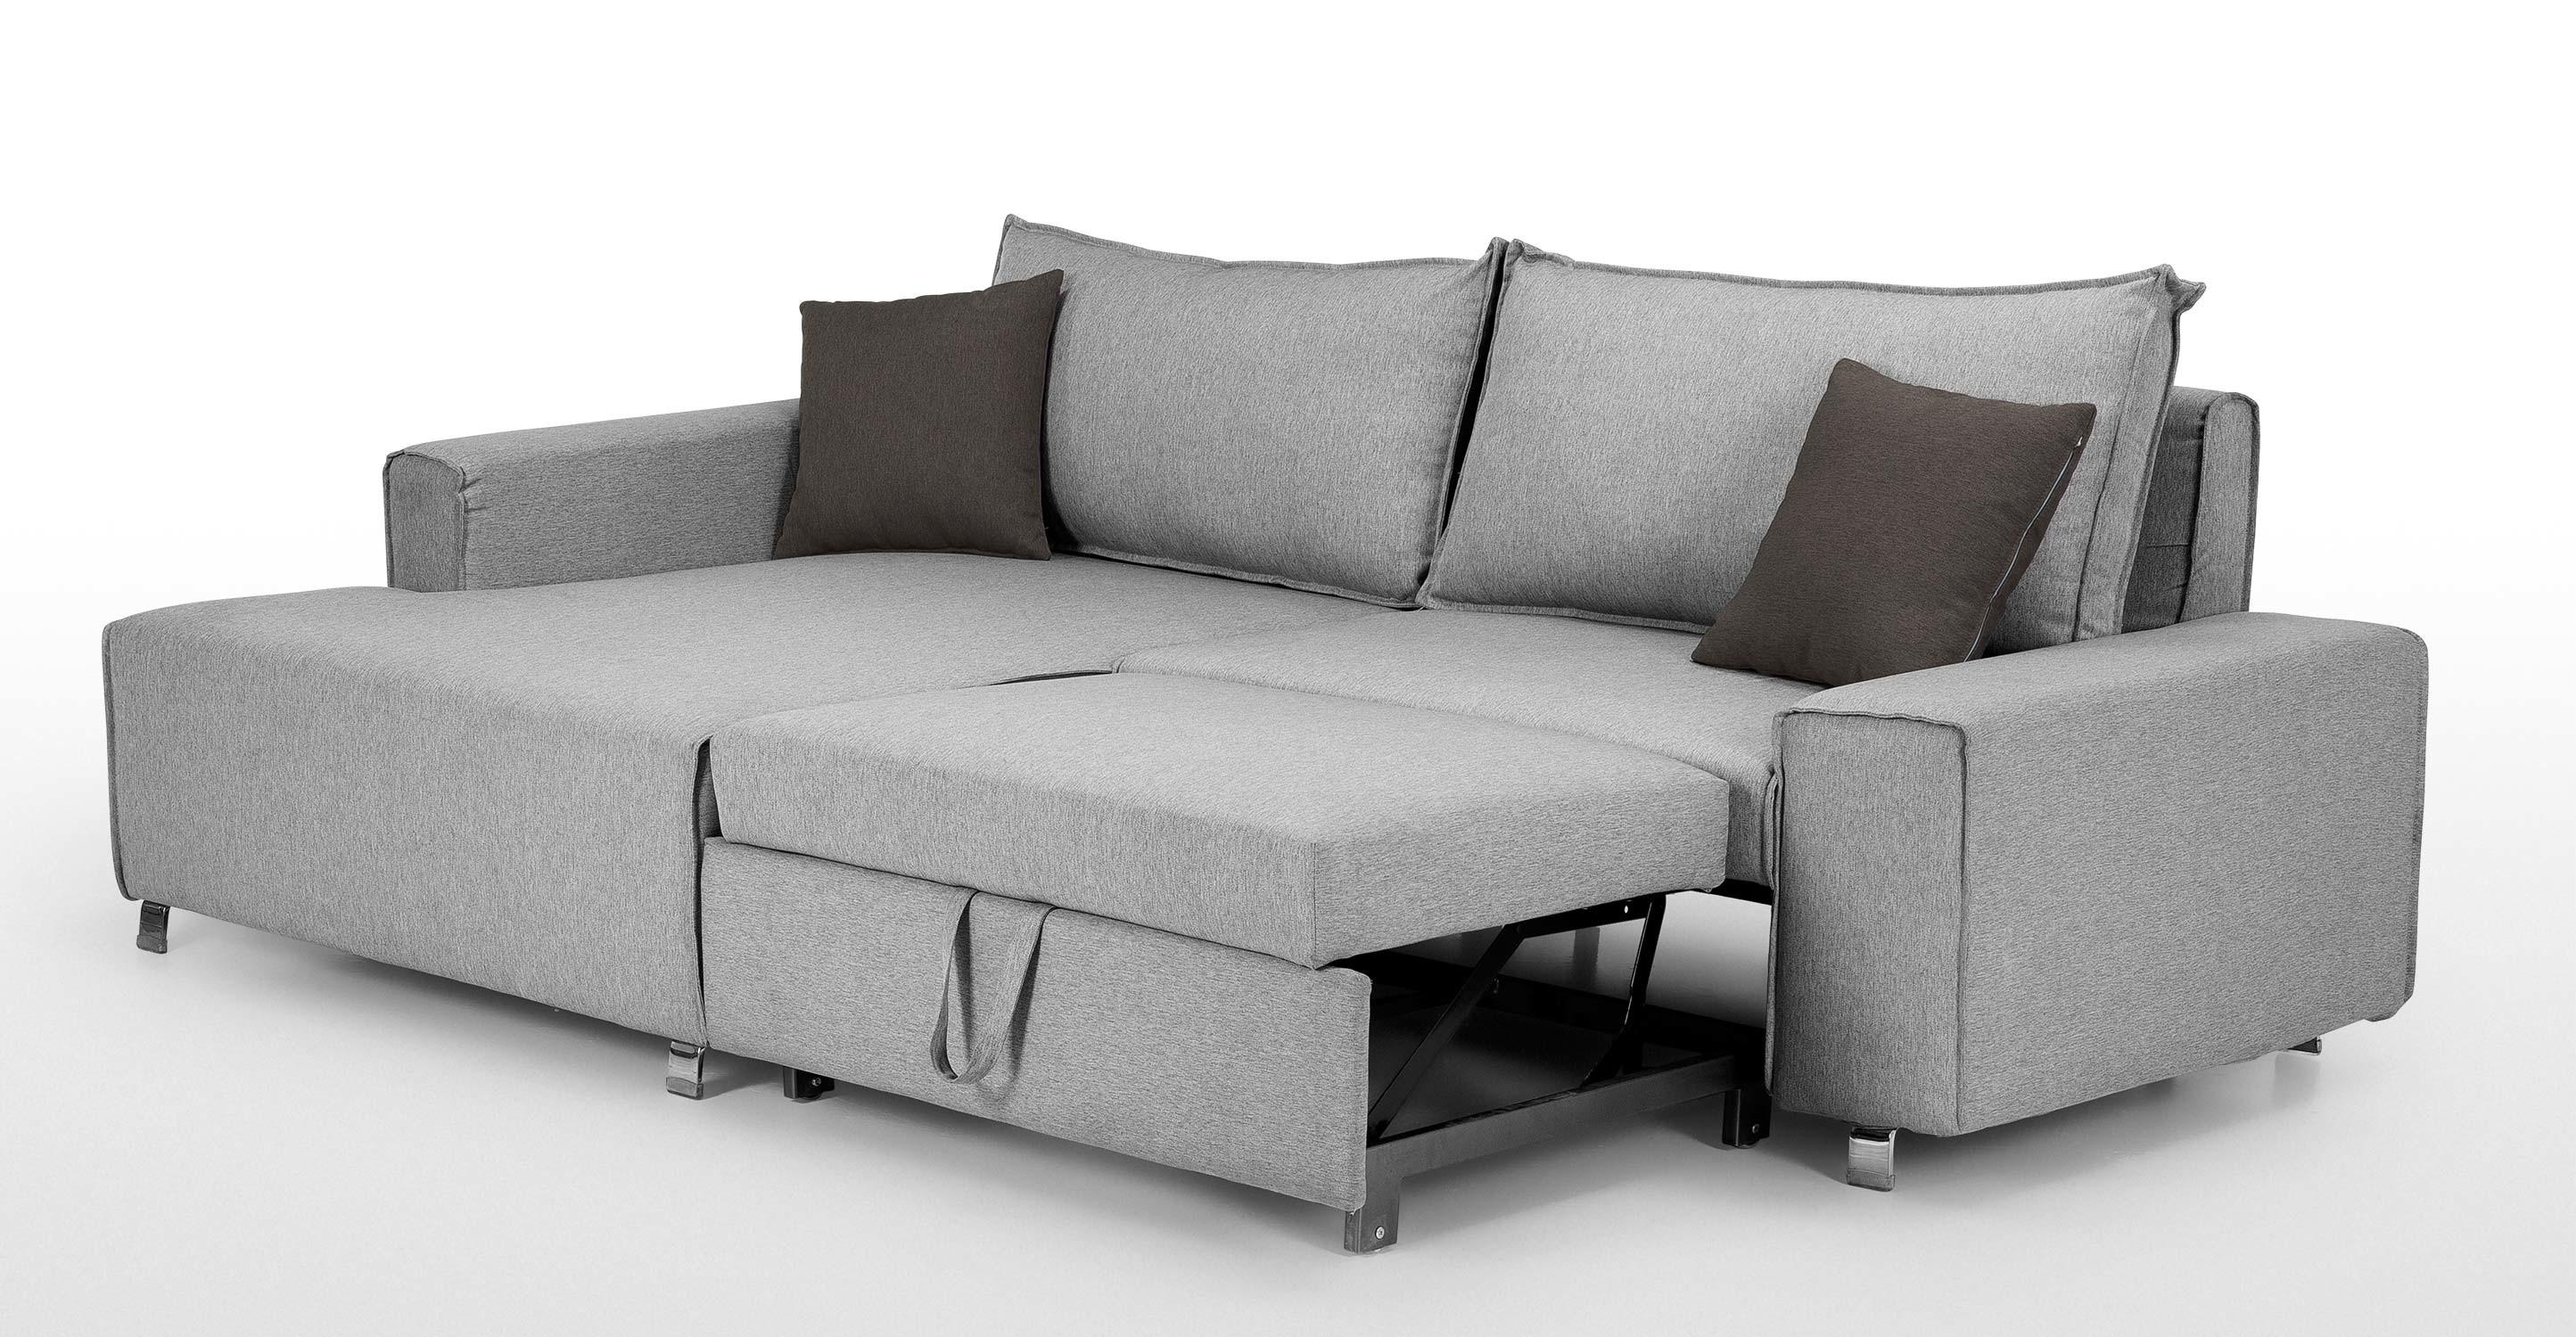 Elegant Sofa Bed Bar Shield 70 For Full Size Sofa Beds Sale With Regarding Sofa Beds Bar Shield (View 9 of 20)